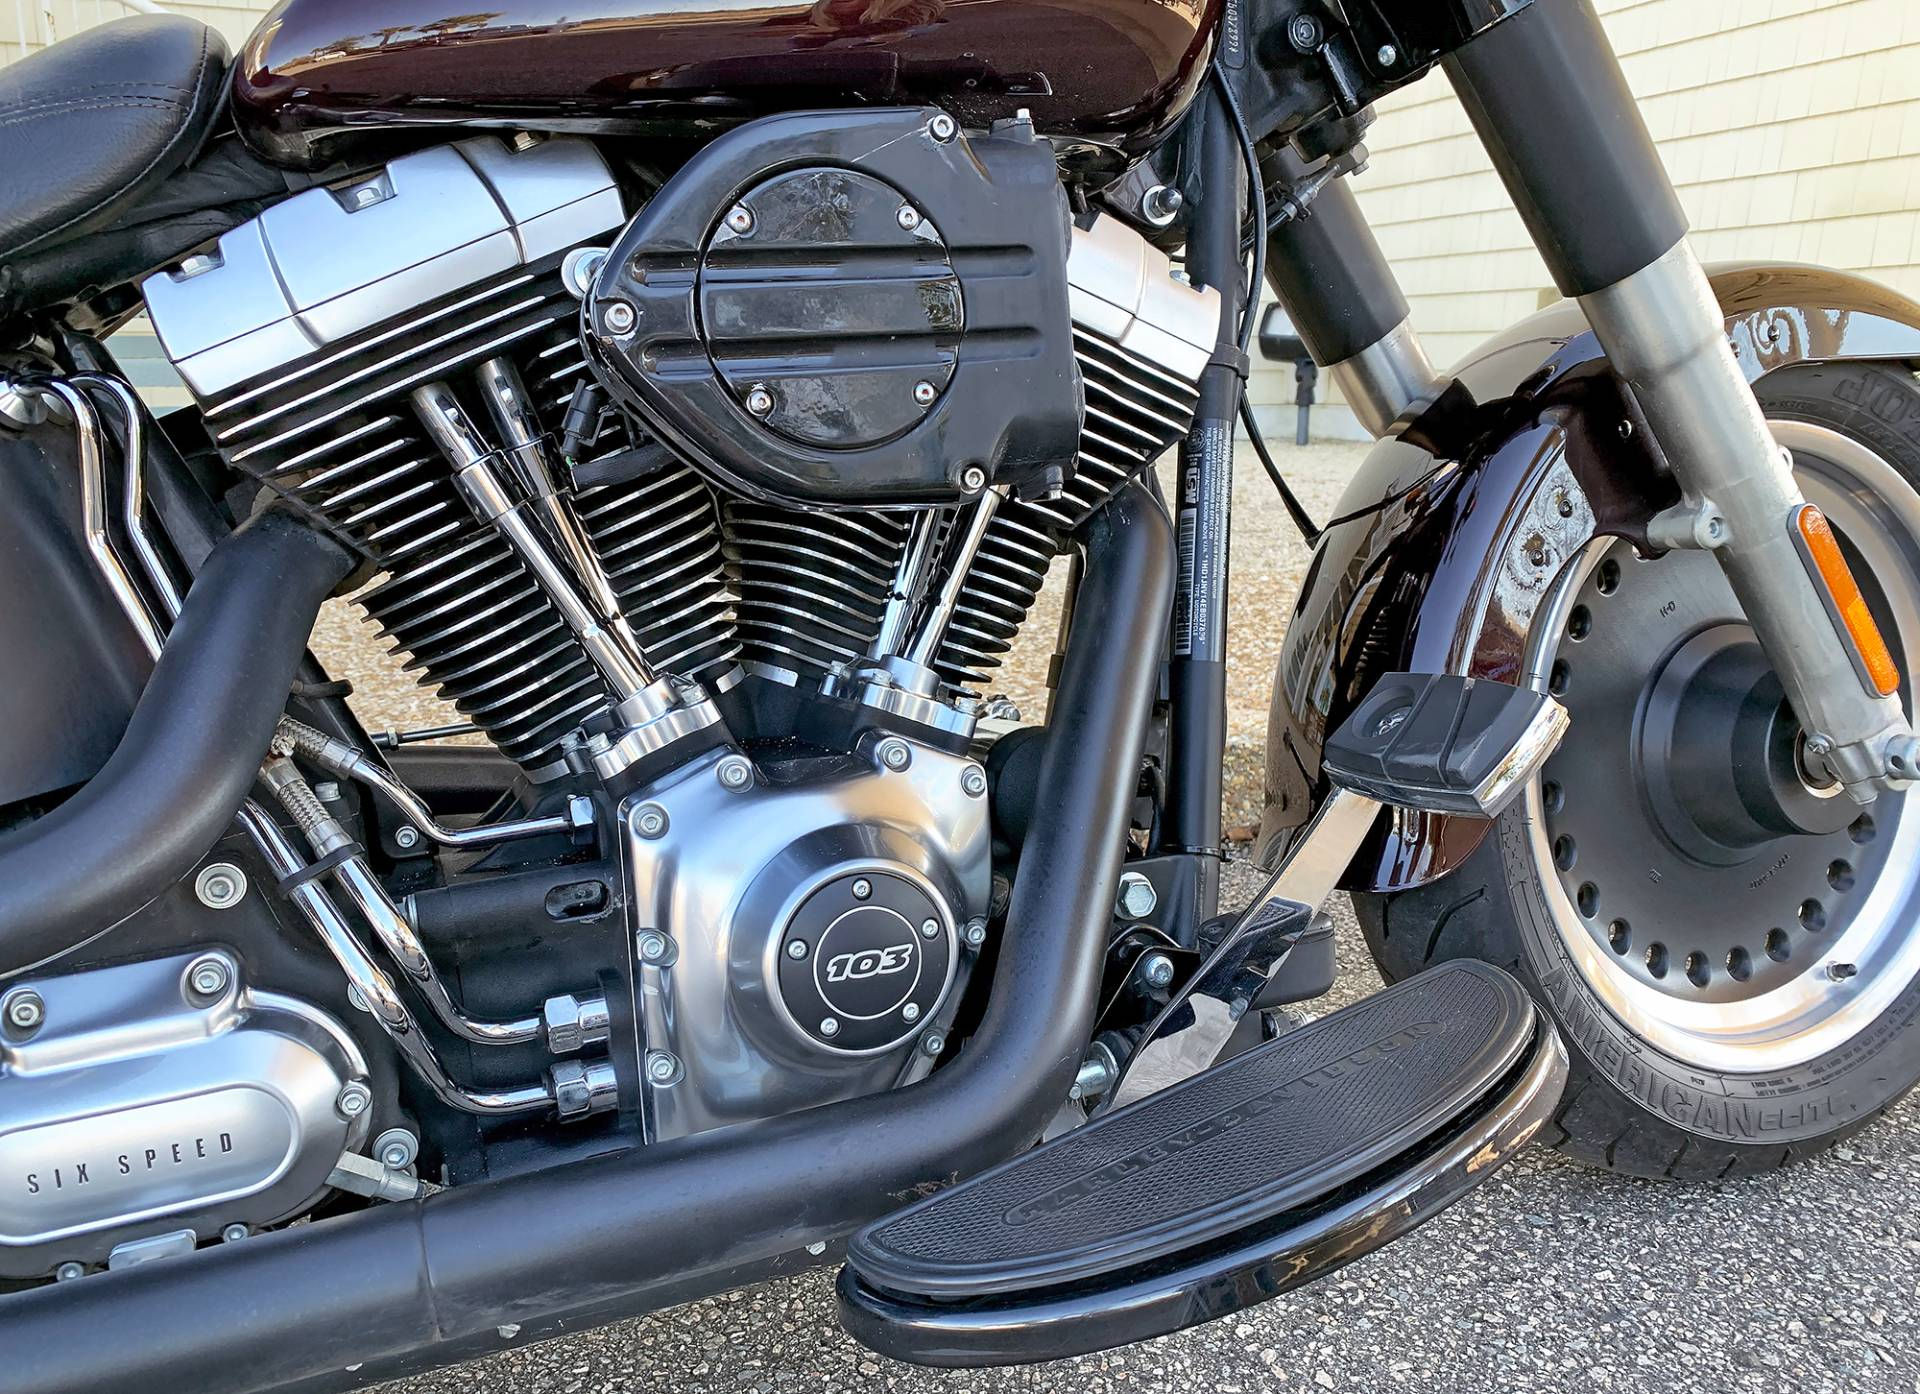 2014 Harley-Davidson Fat Boy® in Jacksonville, North Carolina - Photo 9